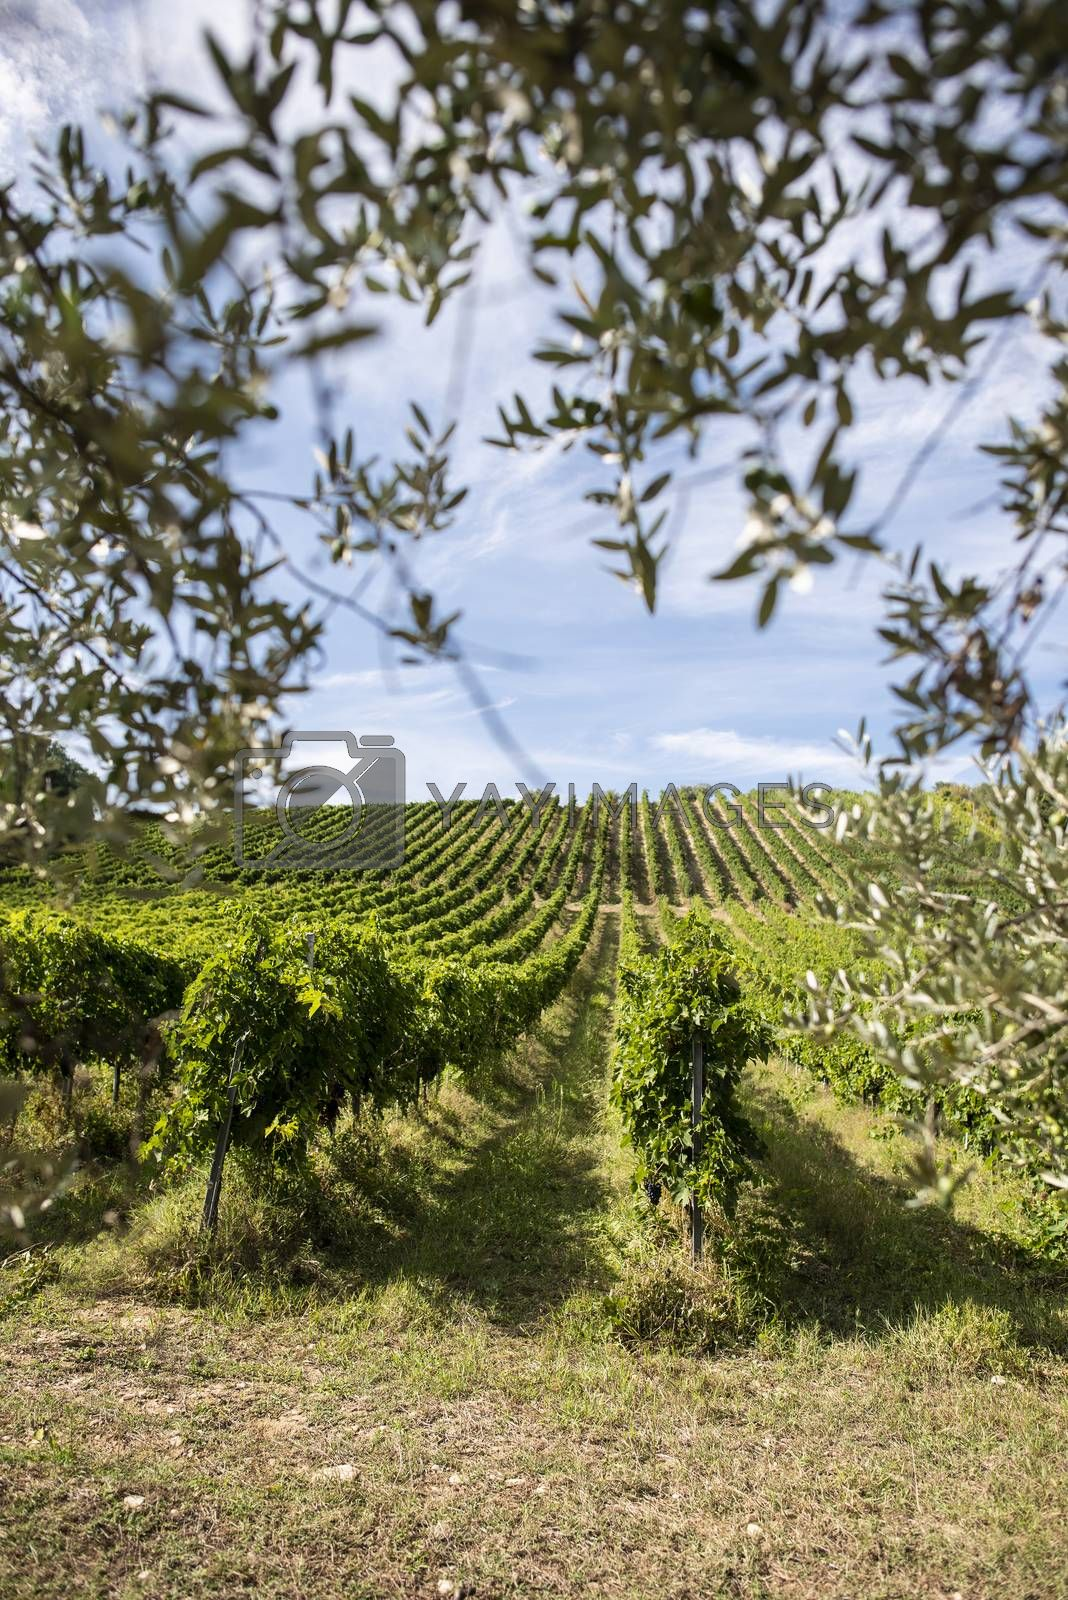 Vineyard rows and olive tree branches on foreground. Growing wine grapes and olives in countryside. Food travel concept in Italy.